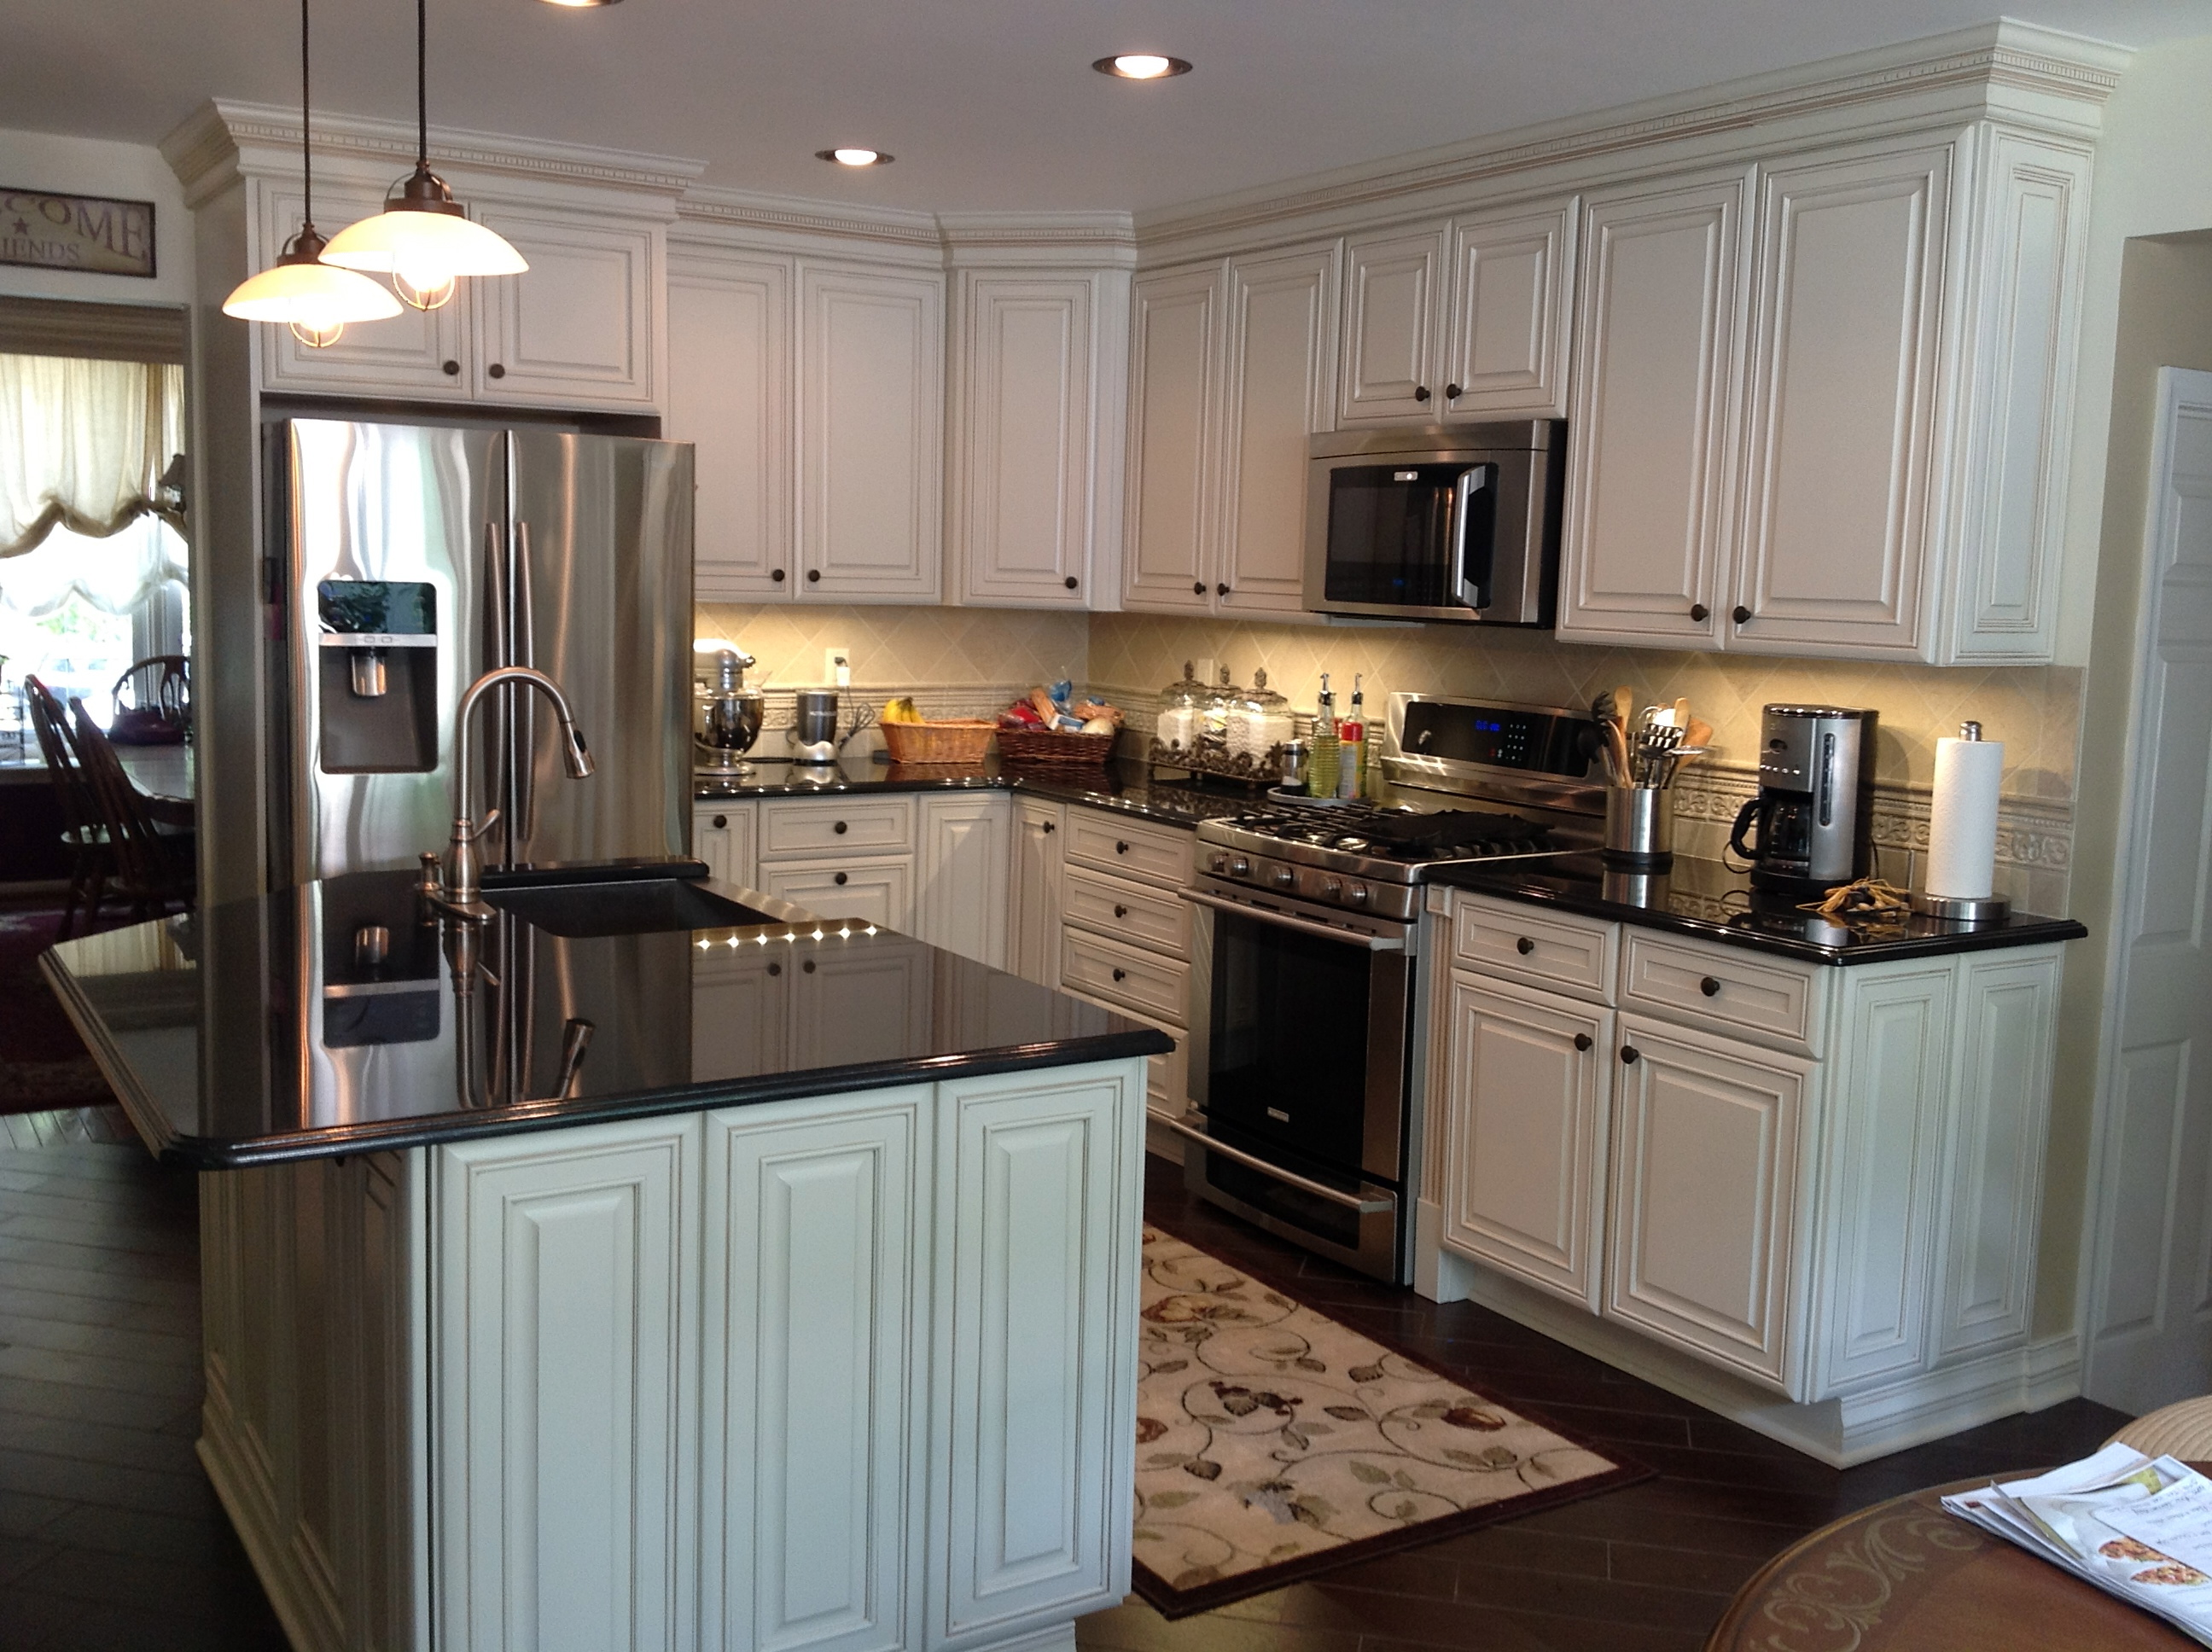 Kitchen Renovation Cost New Jersey Wow Blog